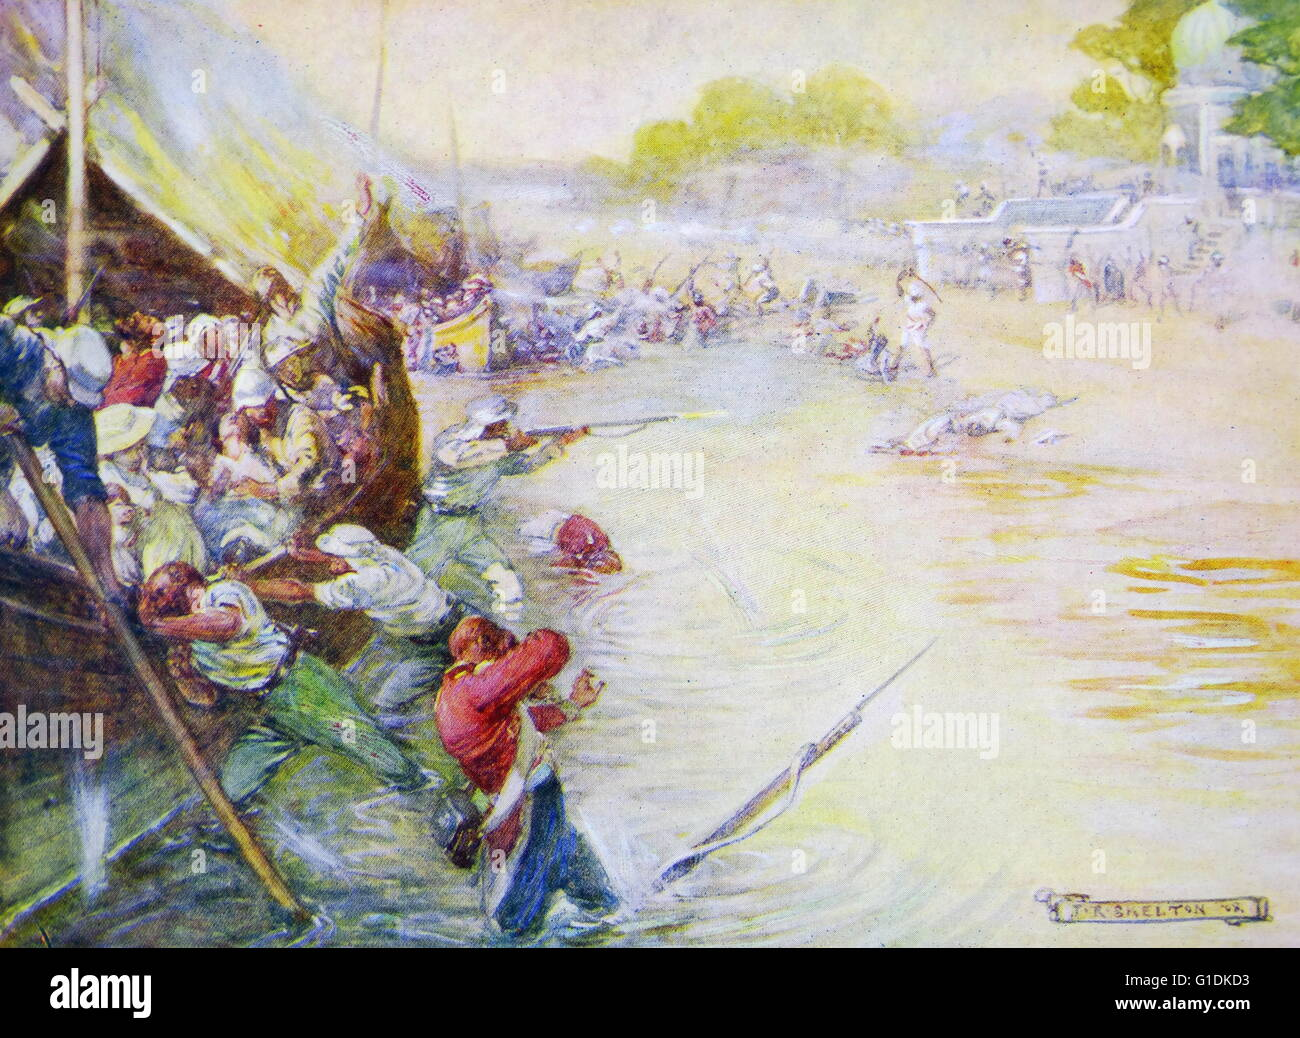 Painting depicting soldiers and their boats stuck in the mud by Joseph Ratcliffe Skelton (1865-1888) British artist. - Stock Image